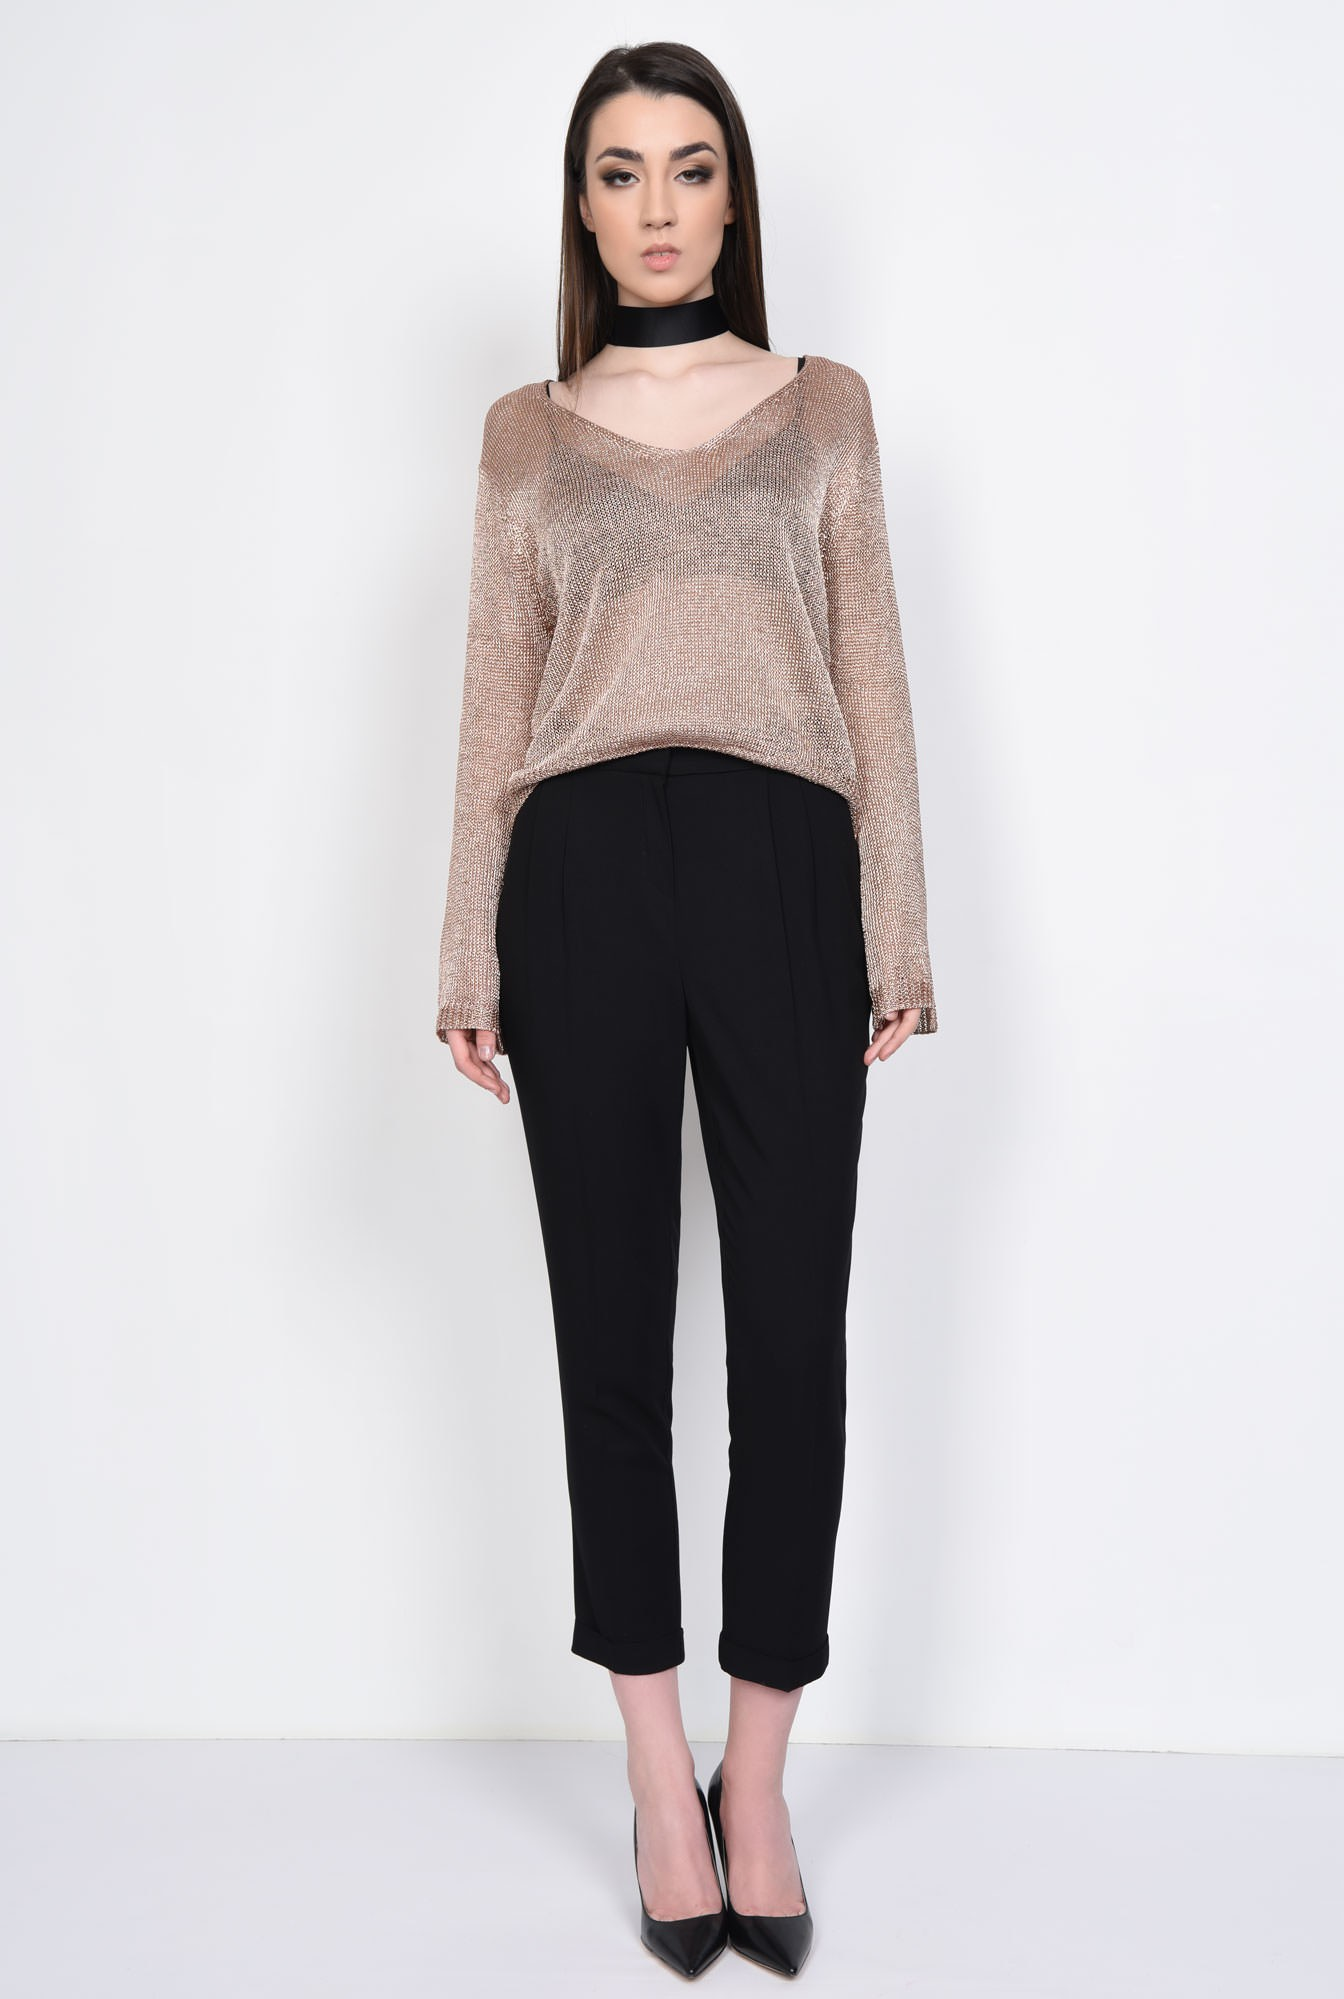 3 - PULOVER CASUAL PL15021707-ROZ